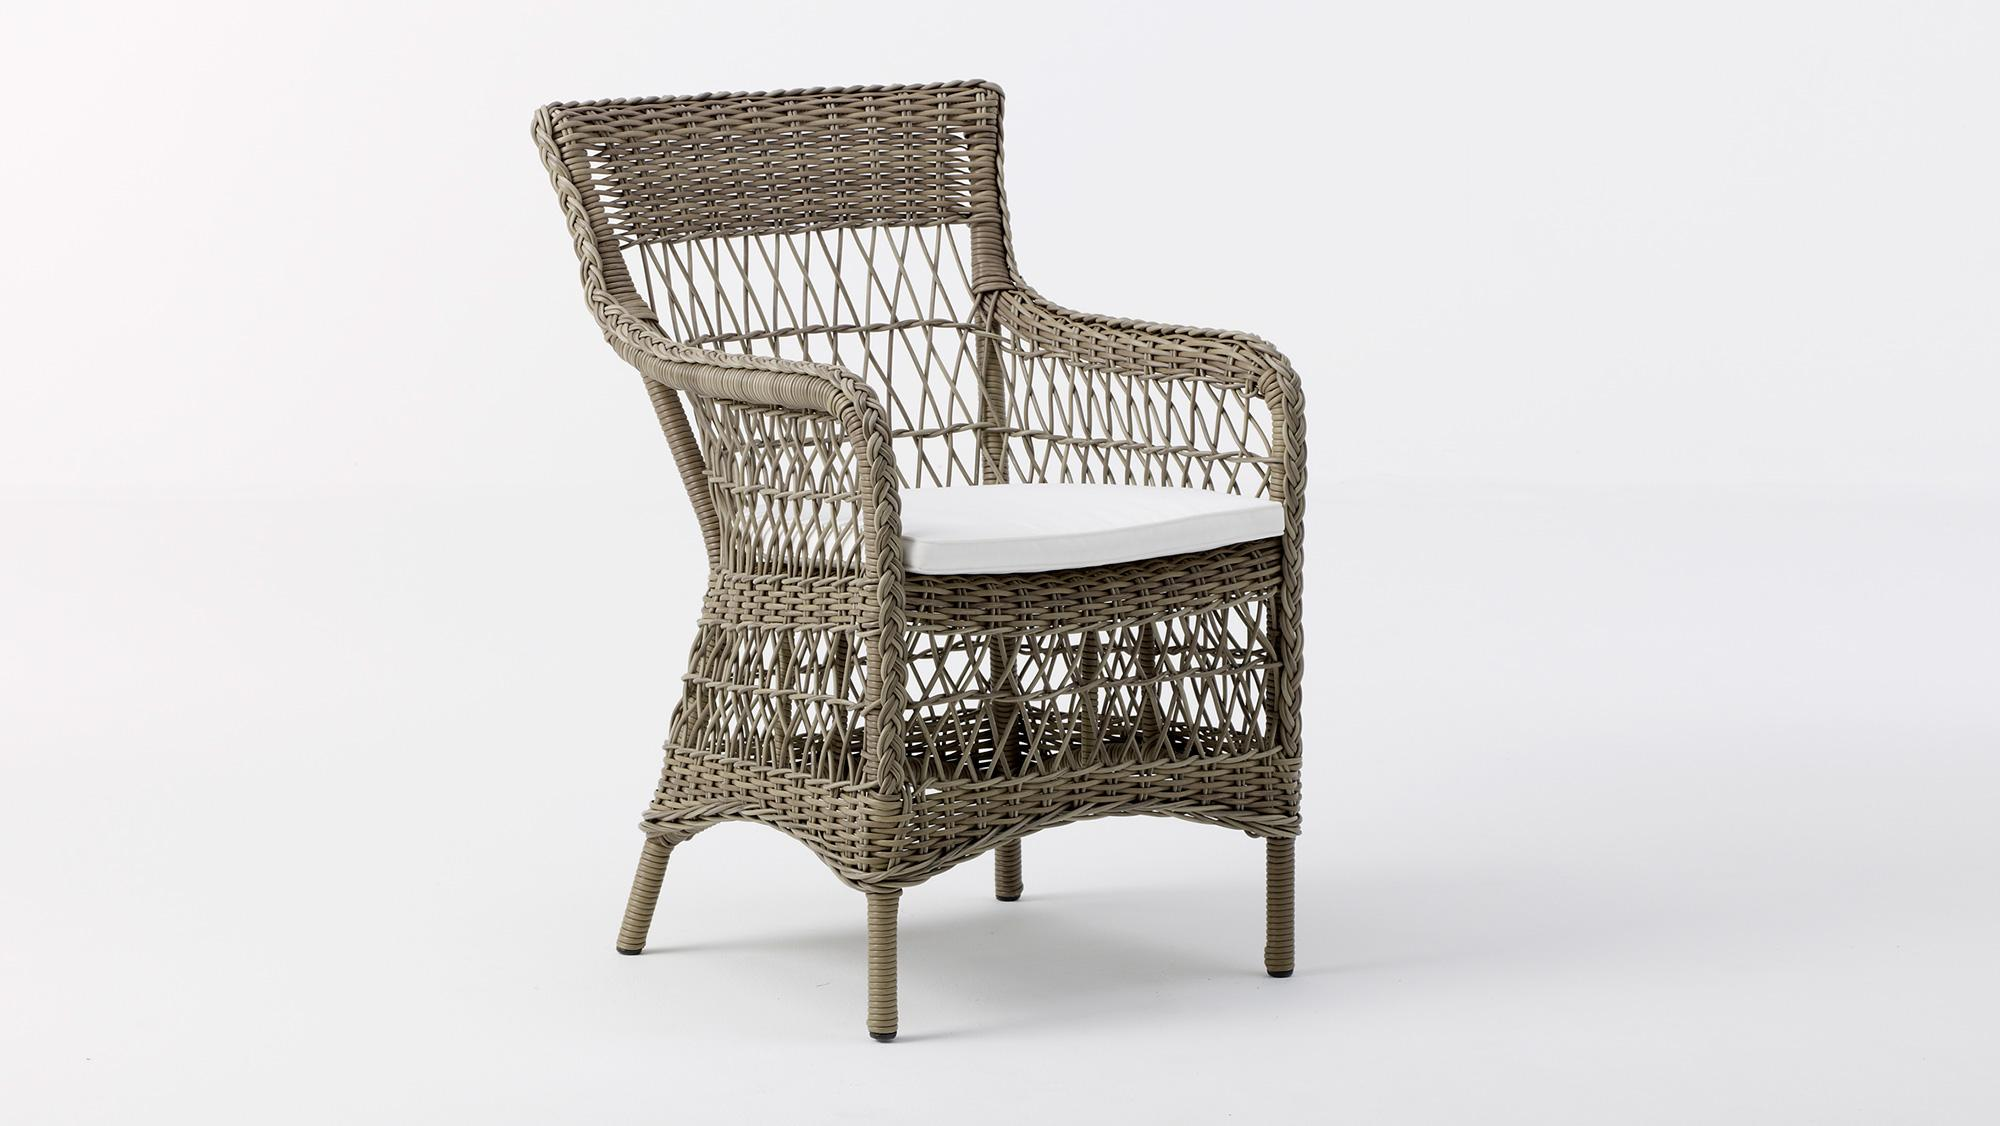 Furniture Unique Rattan Chair For Indoor Outdoor Furniture